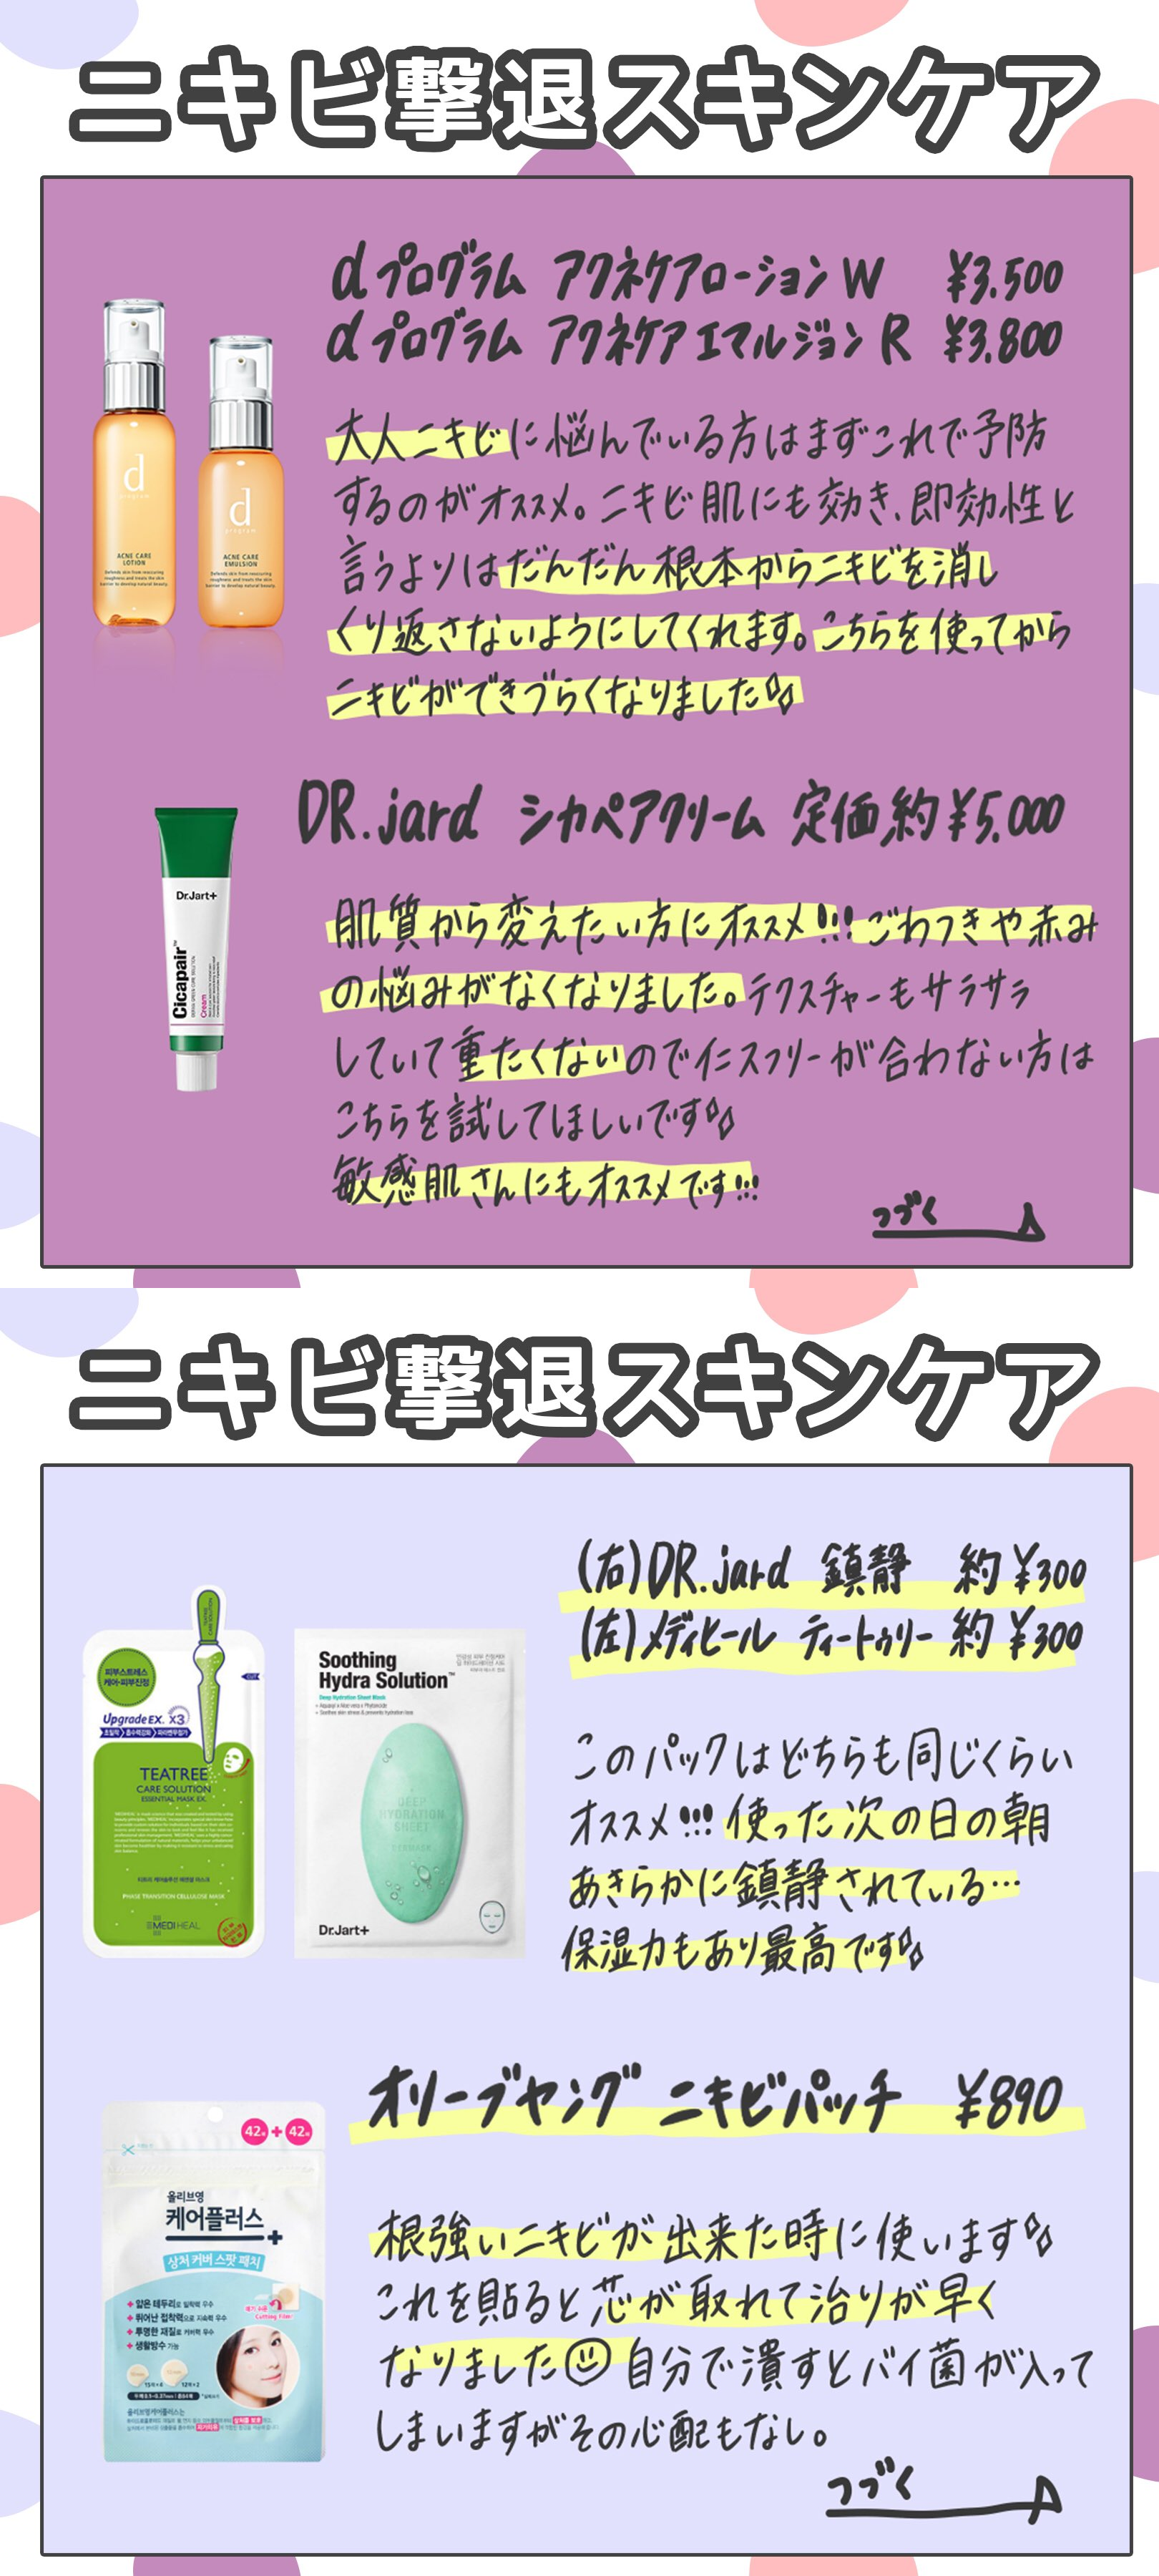 Skiena コスメ スキンケア On Twitter Care How To Make Makeup